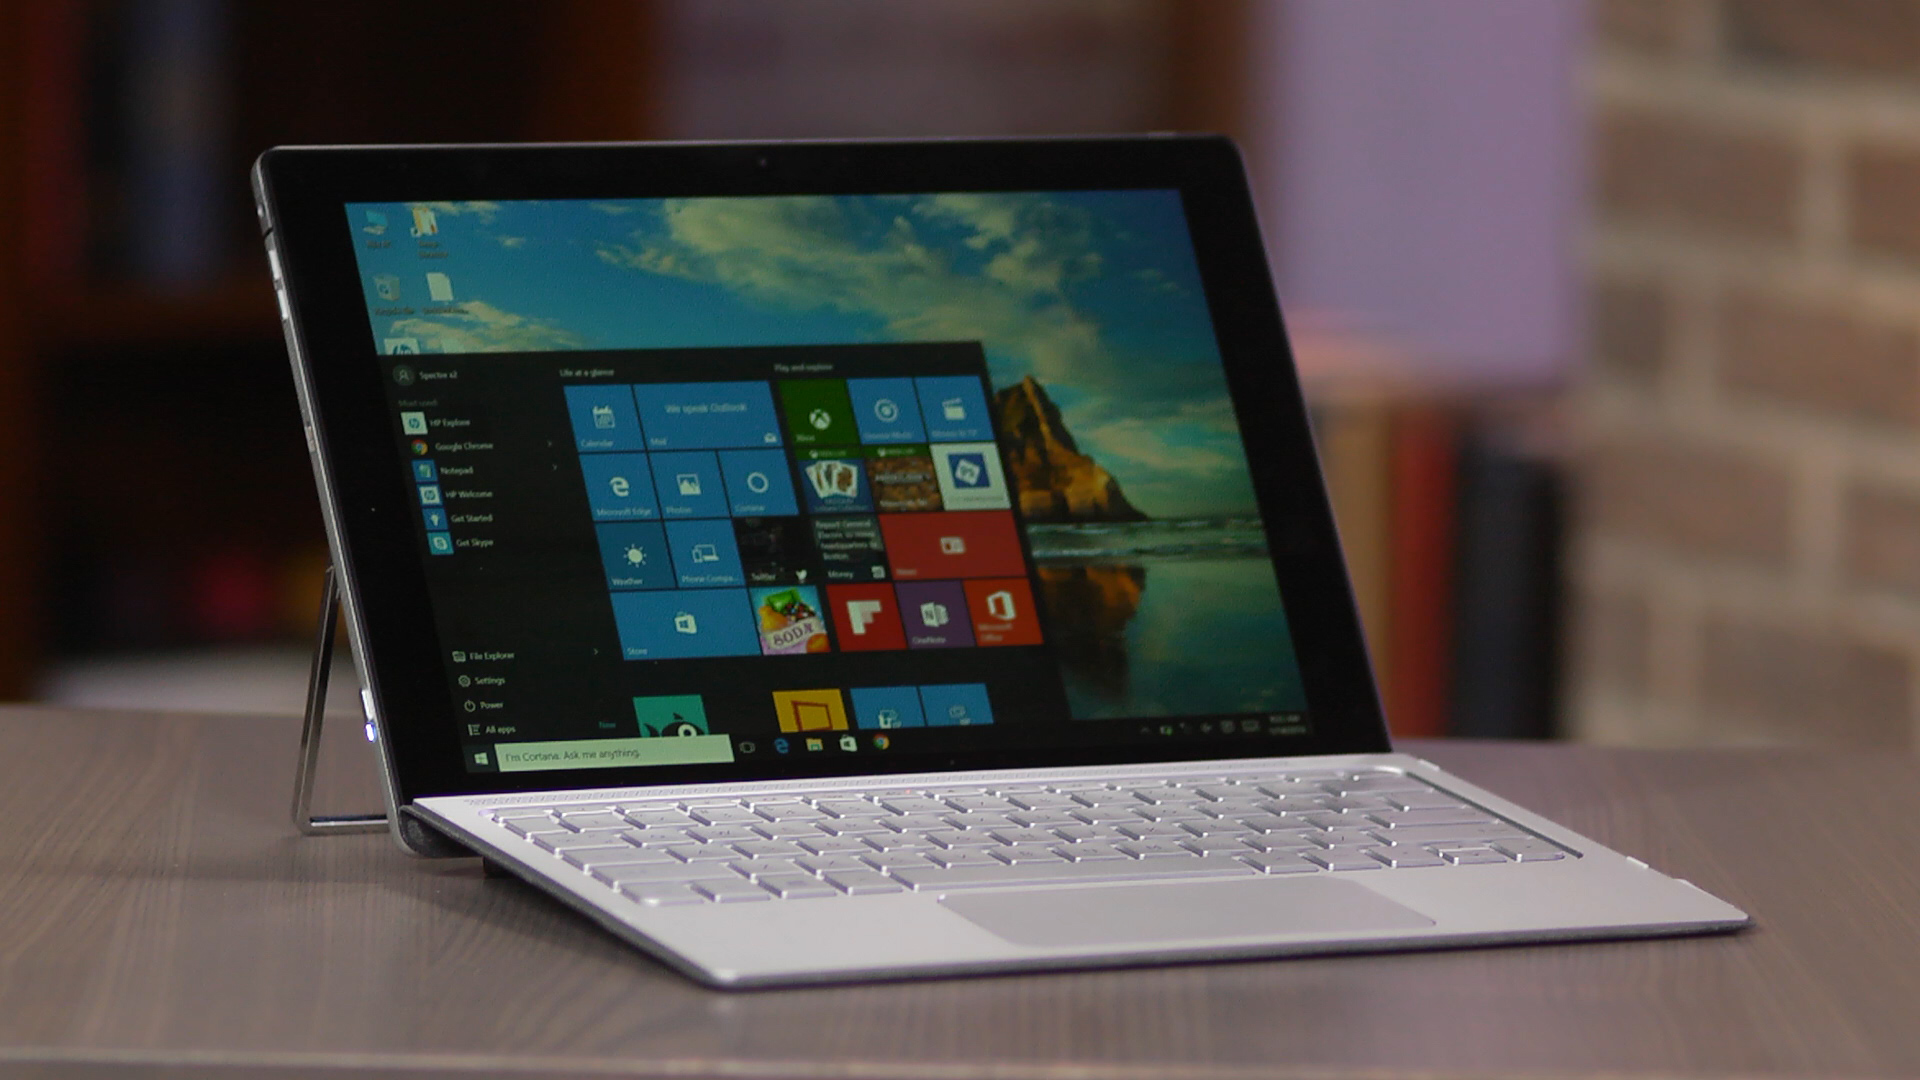 Video: HP Spectre x2 is a Surface-like tablet, keyboard included